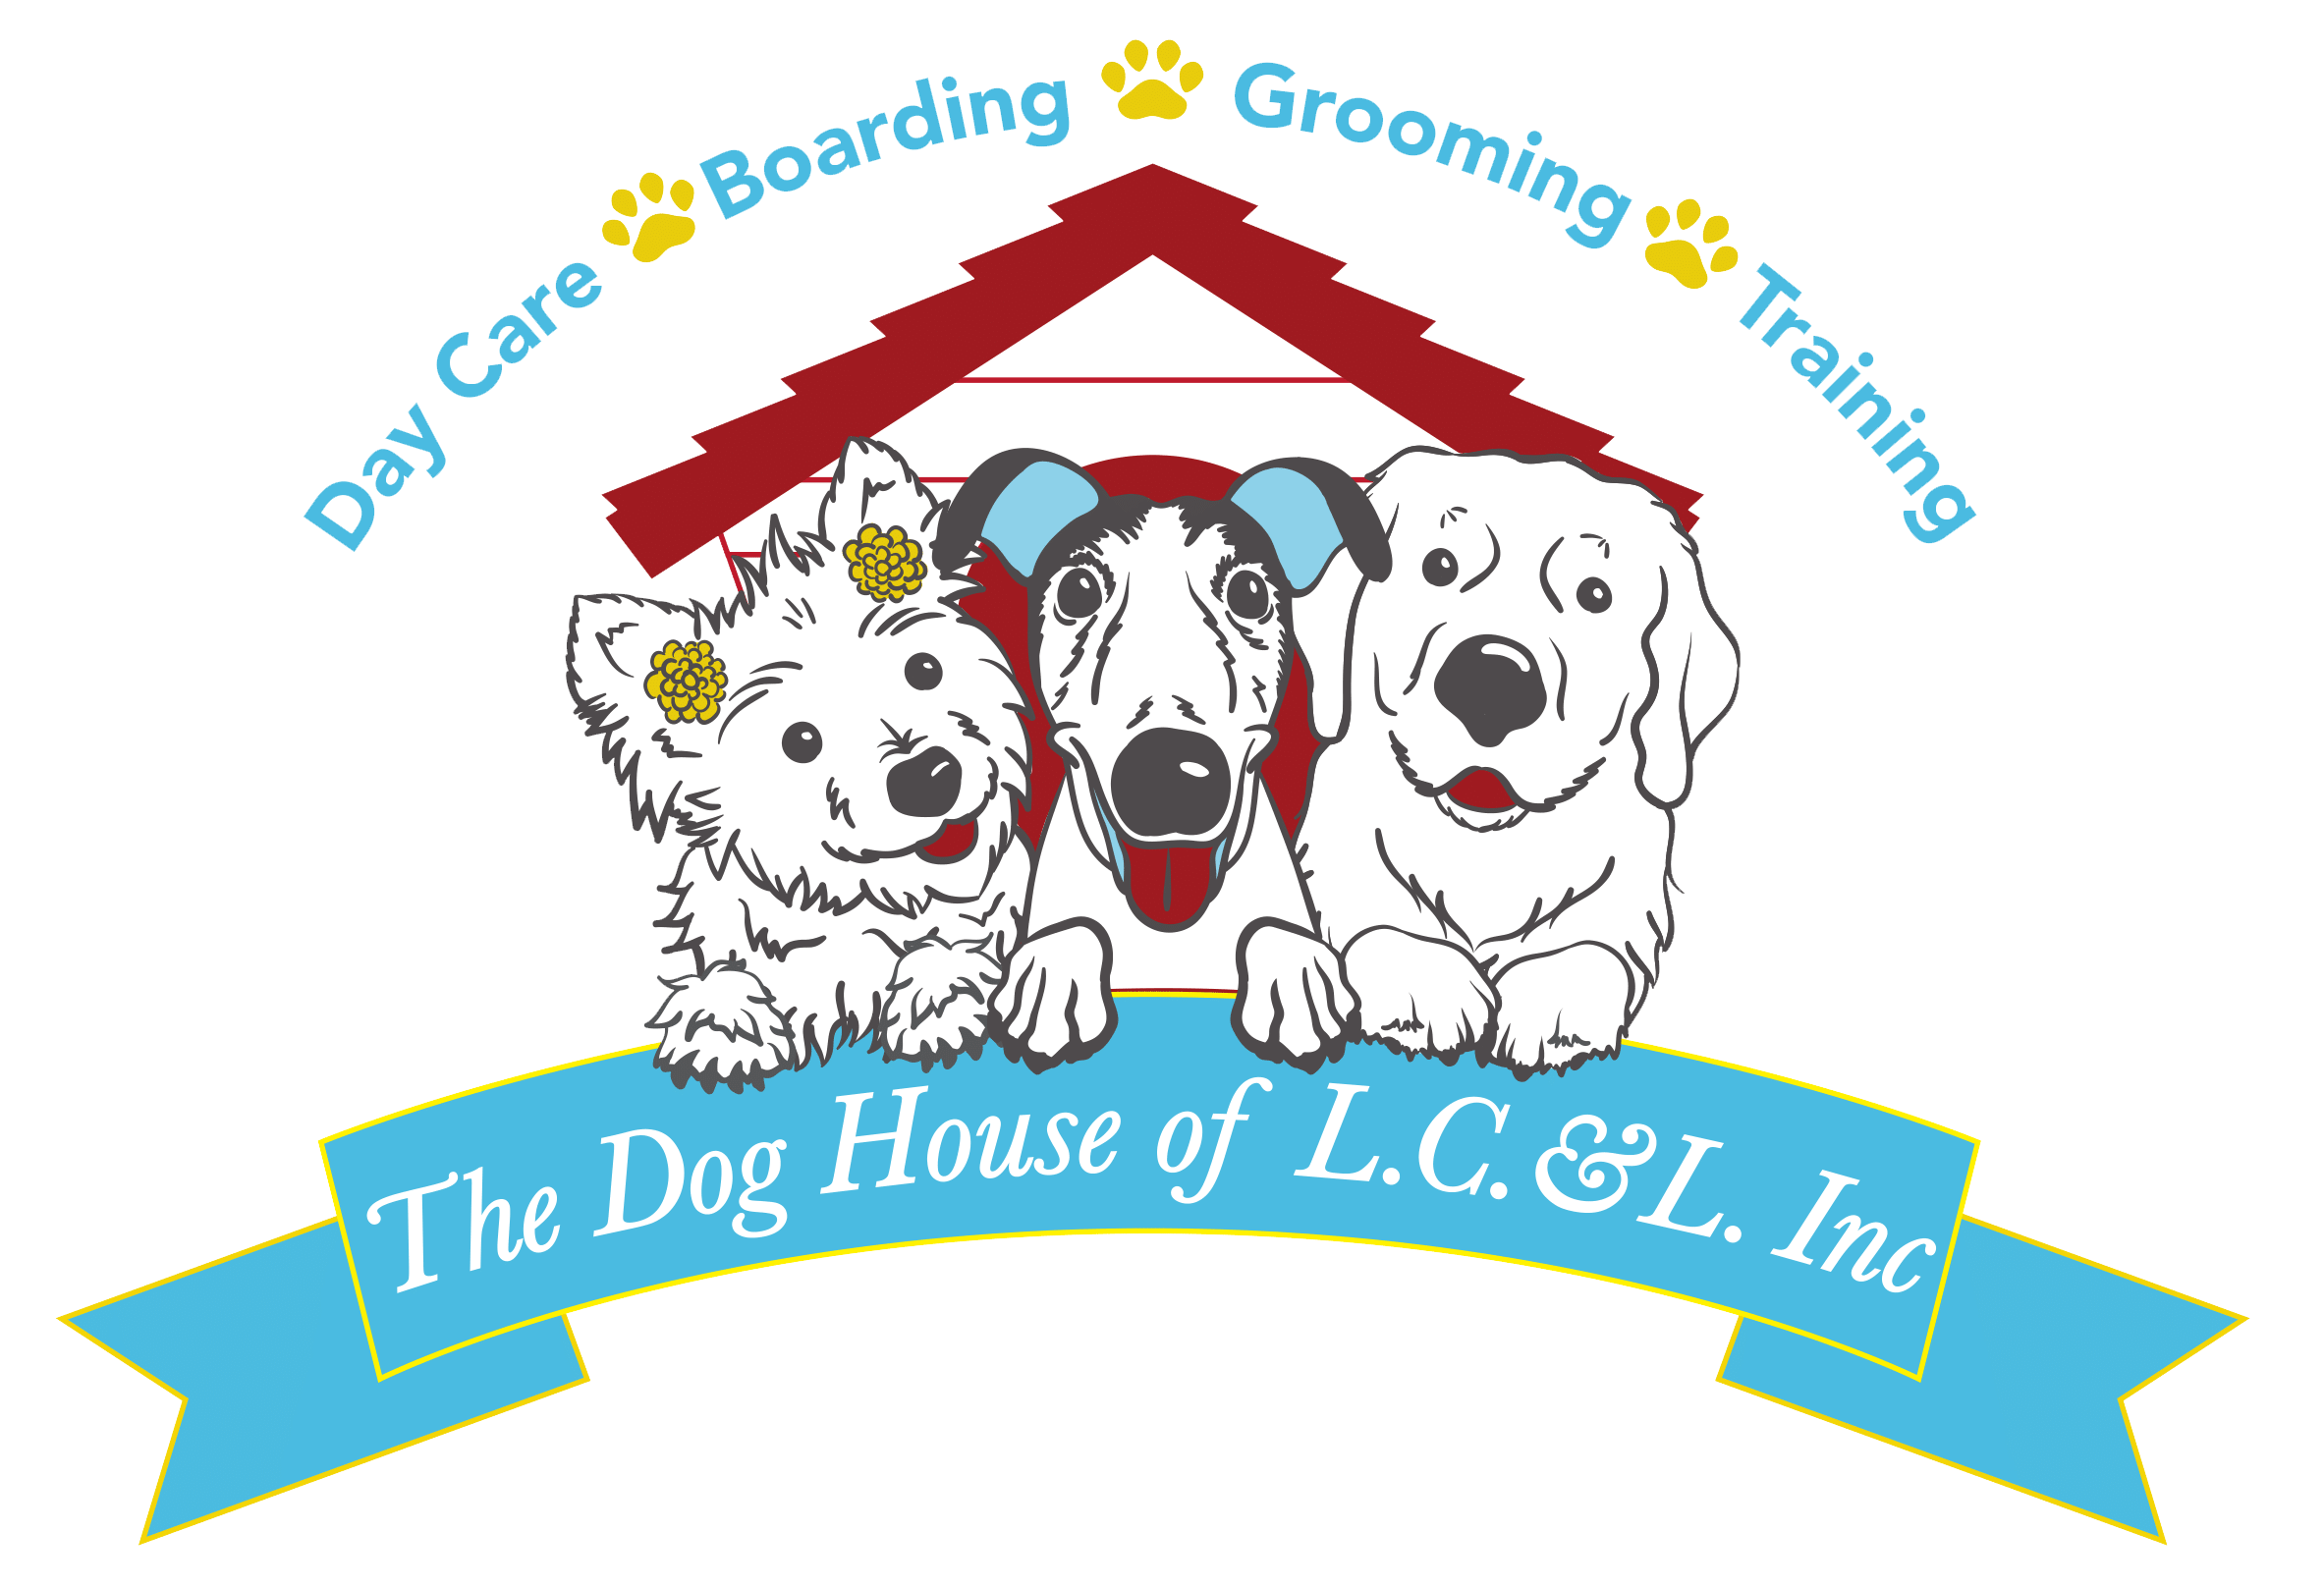 The Dog House of L. C. & L.